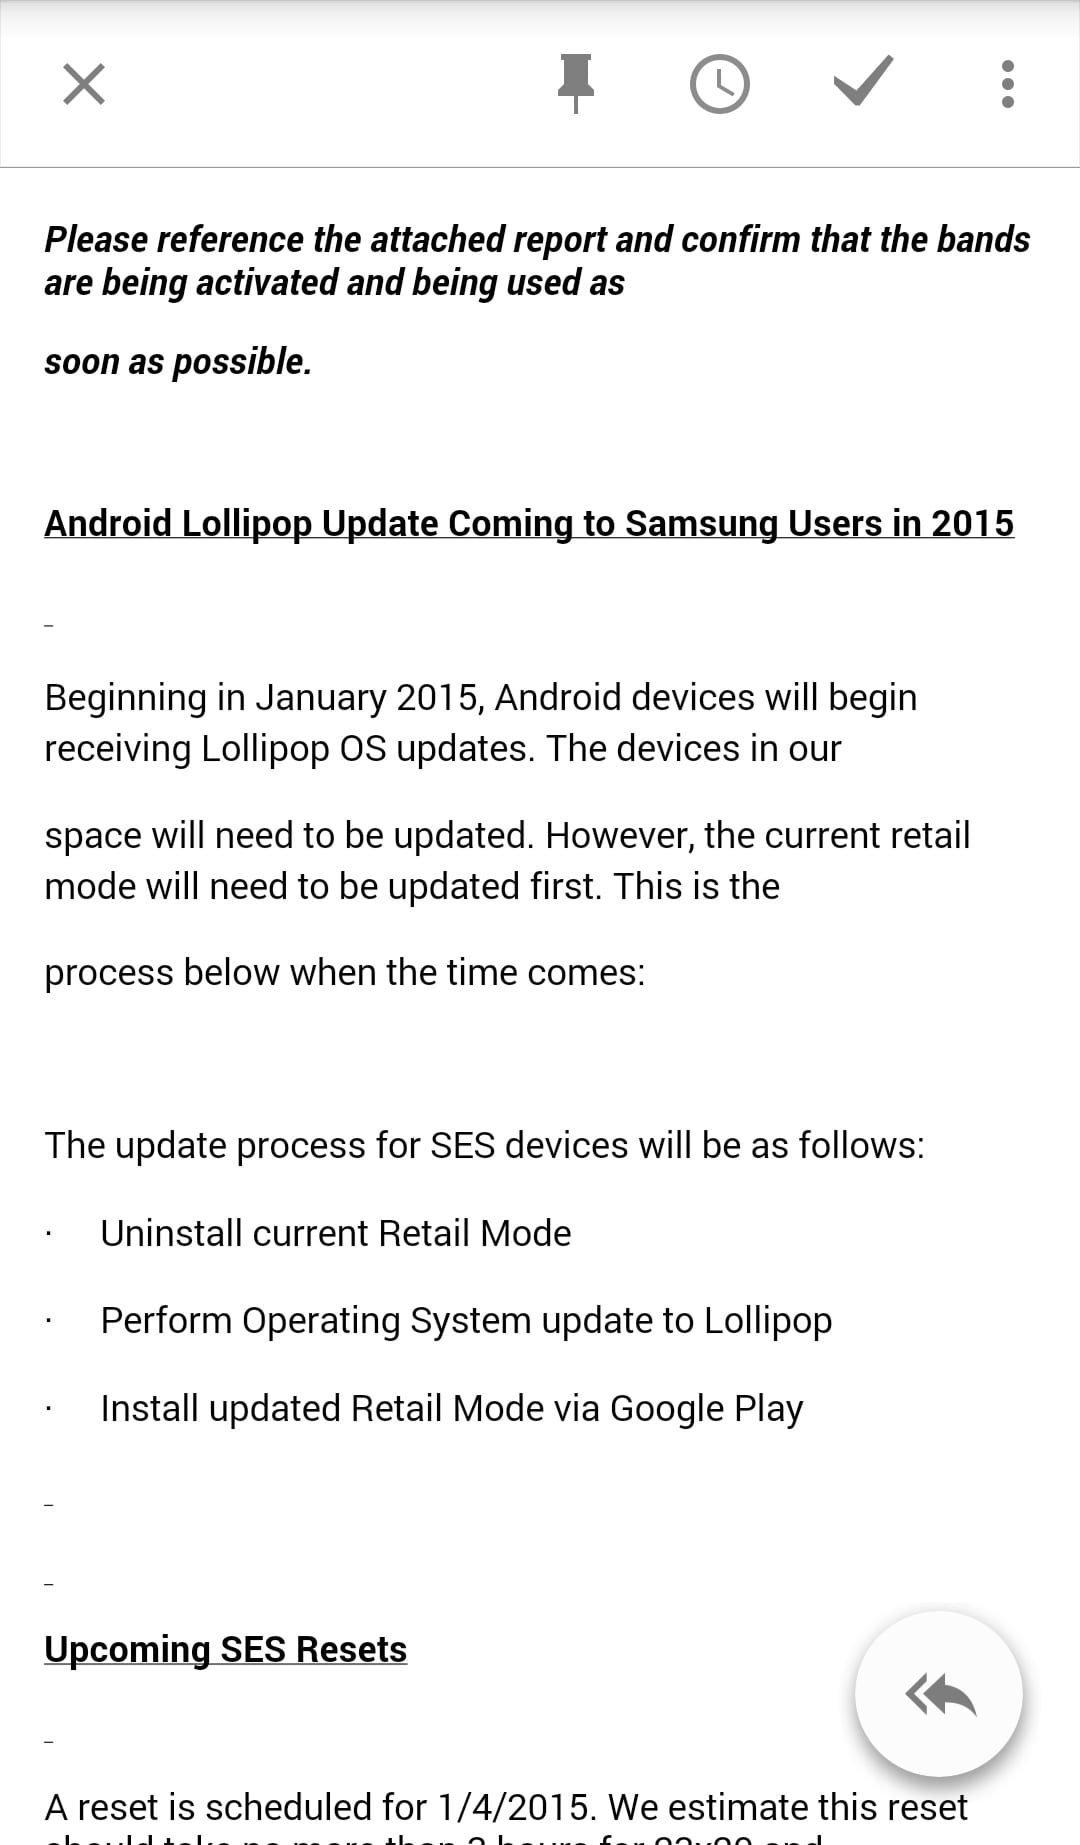 Samsung Android 5.0 (1)